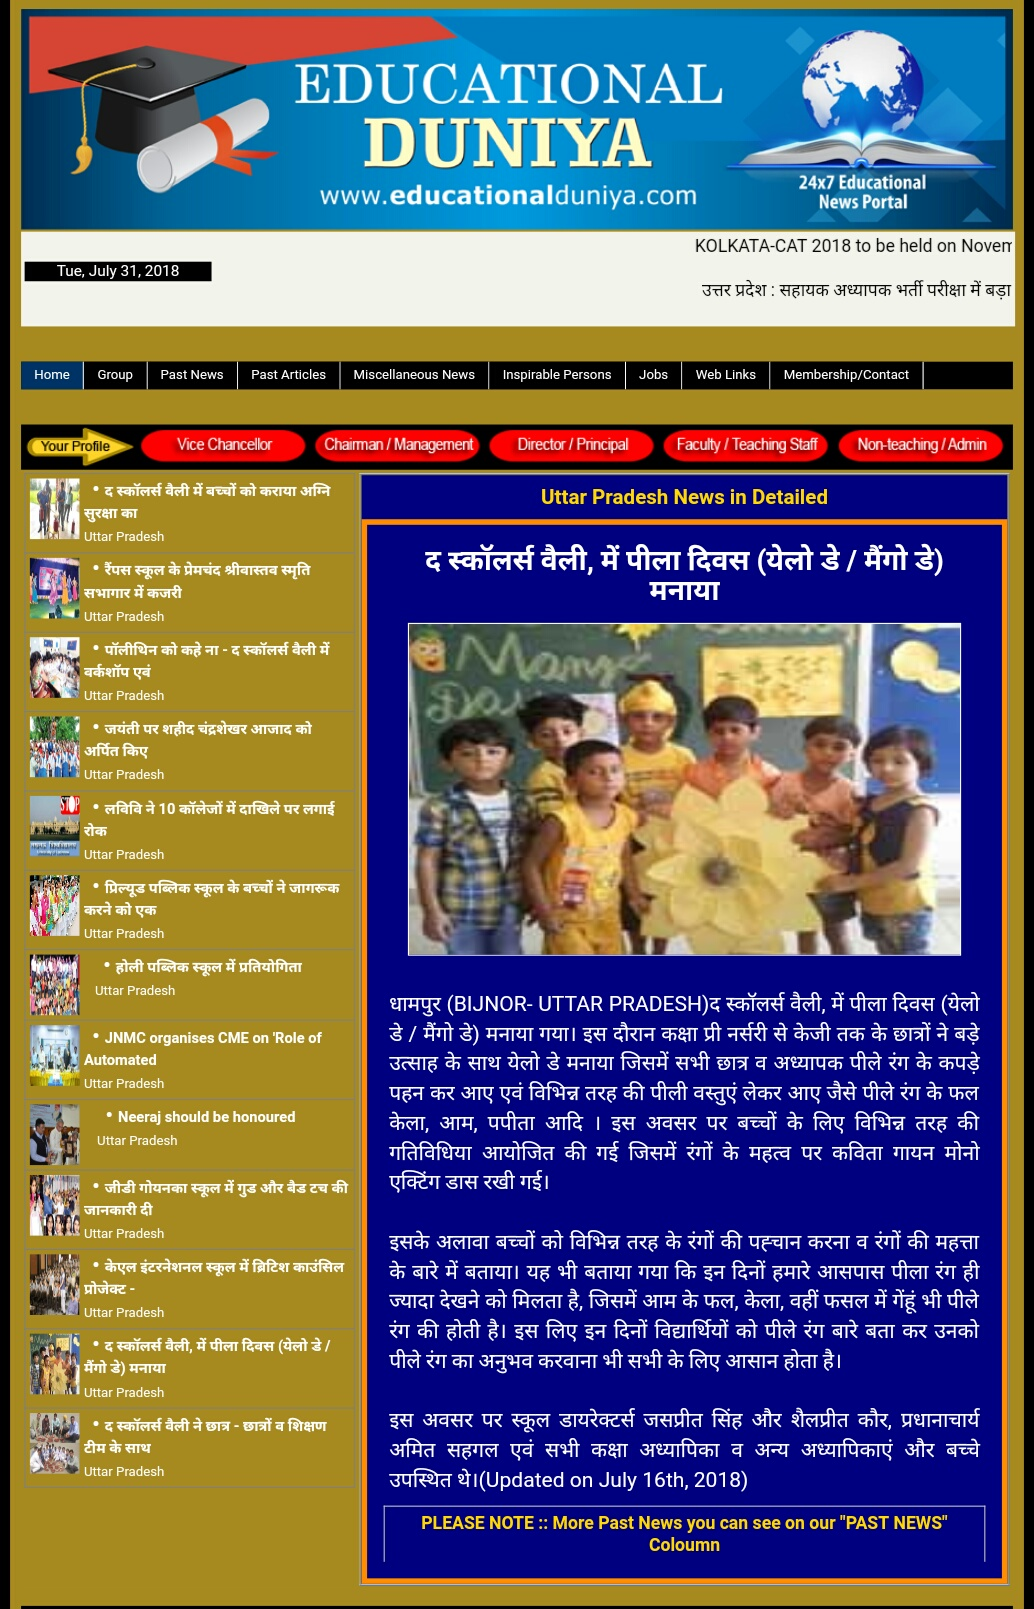 Yellow Day - Educational Duniya News (31.07.2018)